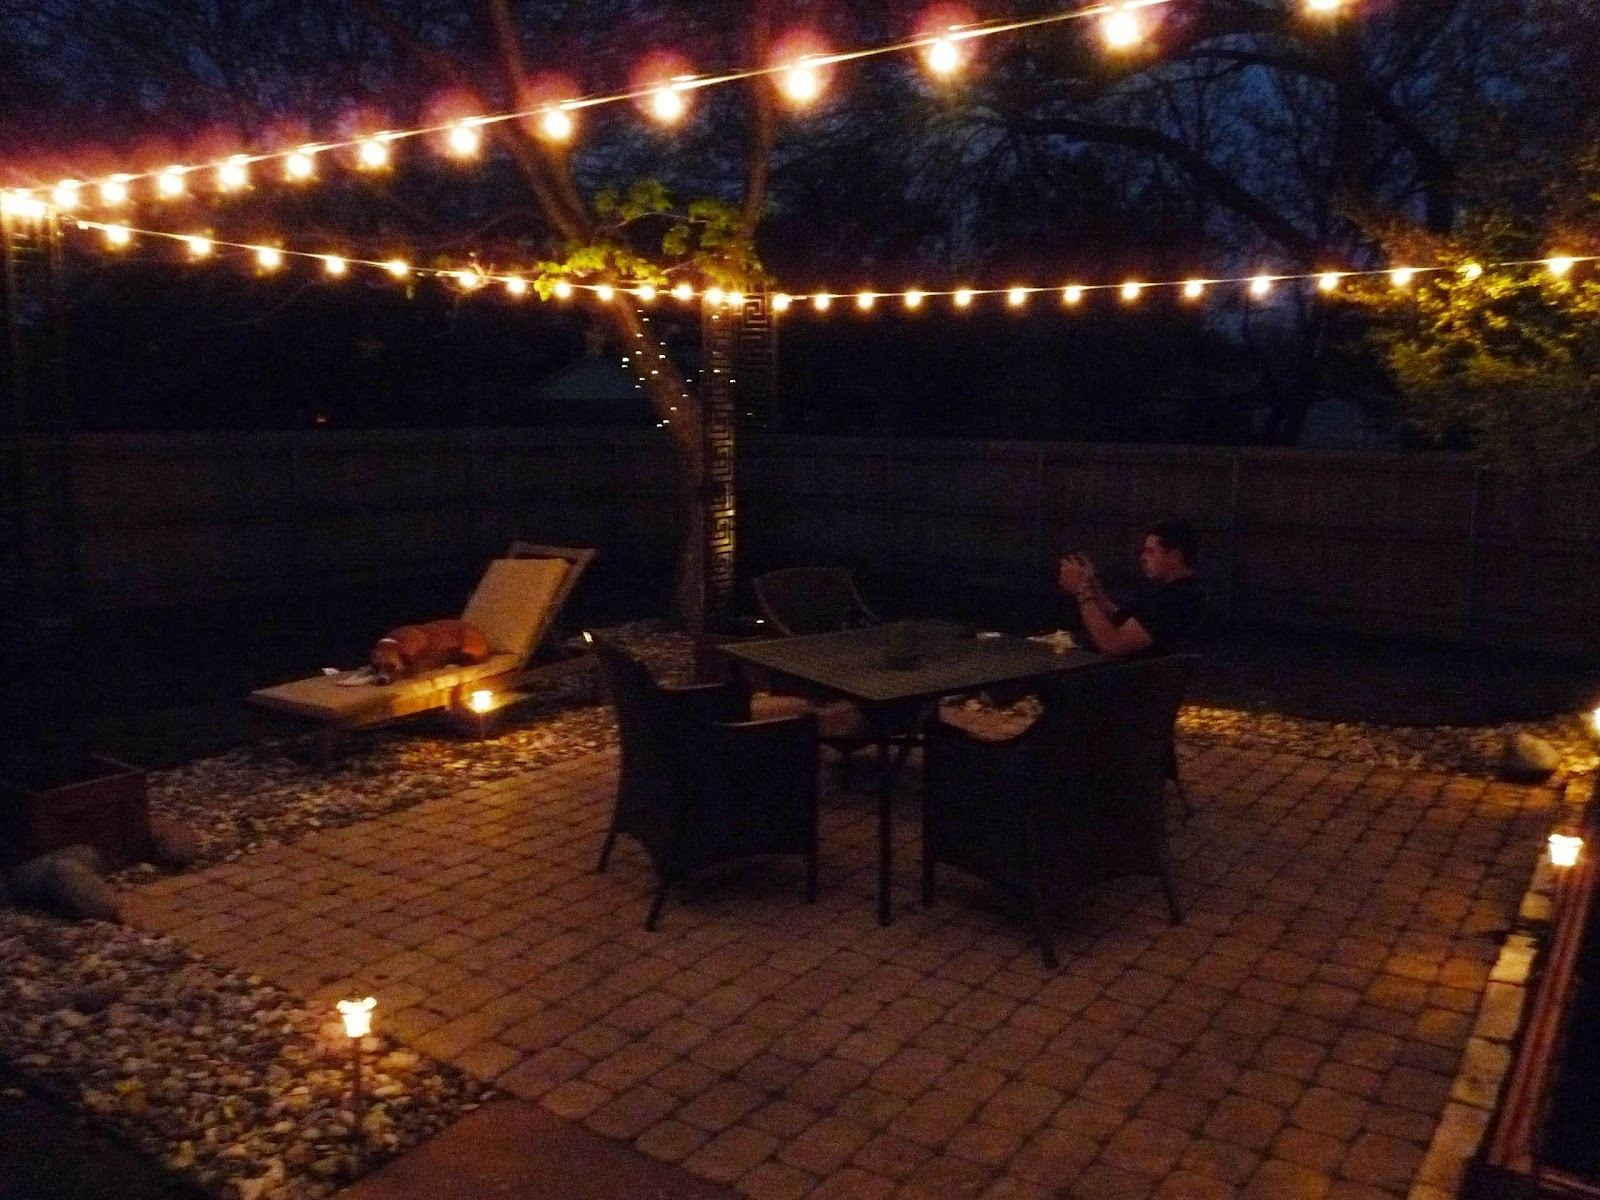 2019 Outdoor Hanging Lights On String Inside Cafe Outdoor Hanging Lights: 21 Astonishing Outdoor Cafe Lights Foto (View 1 of 20)